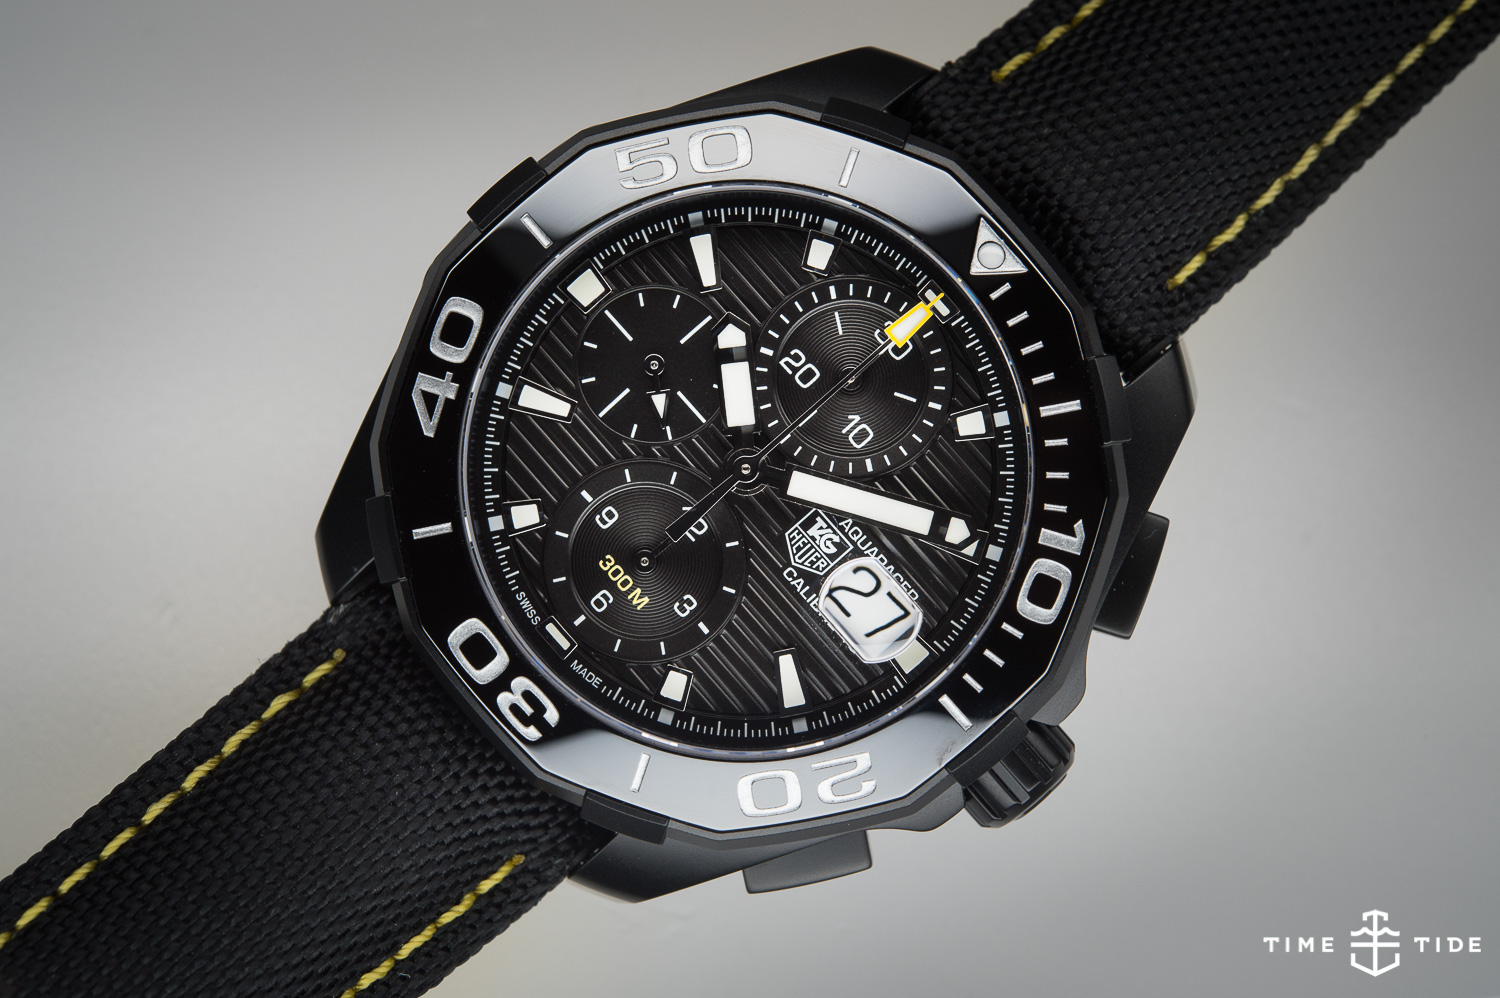 Editor 39 s pick the tag heuer aquaracer 300 calibre 16 chronograph review time and tide watches for Tag heuer aquaracer 300m